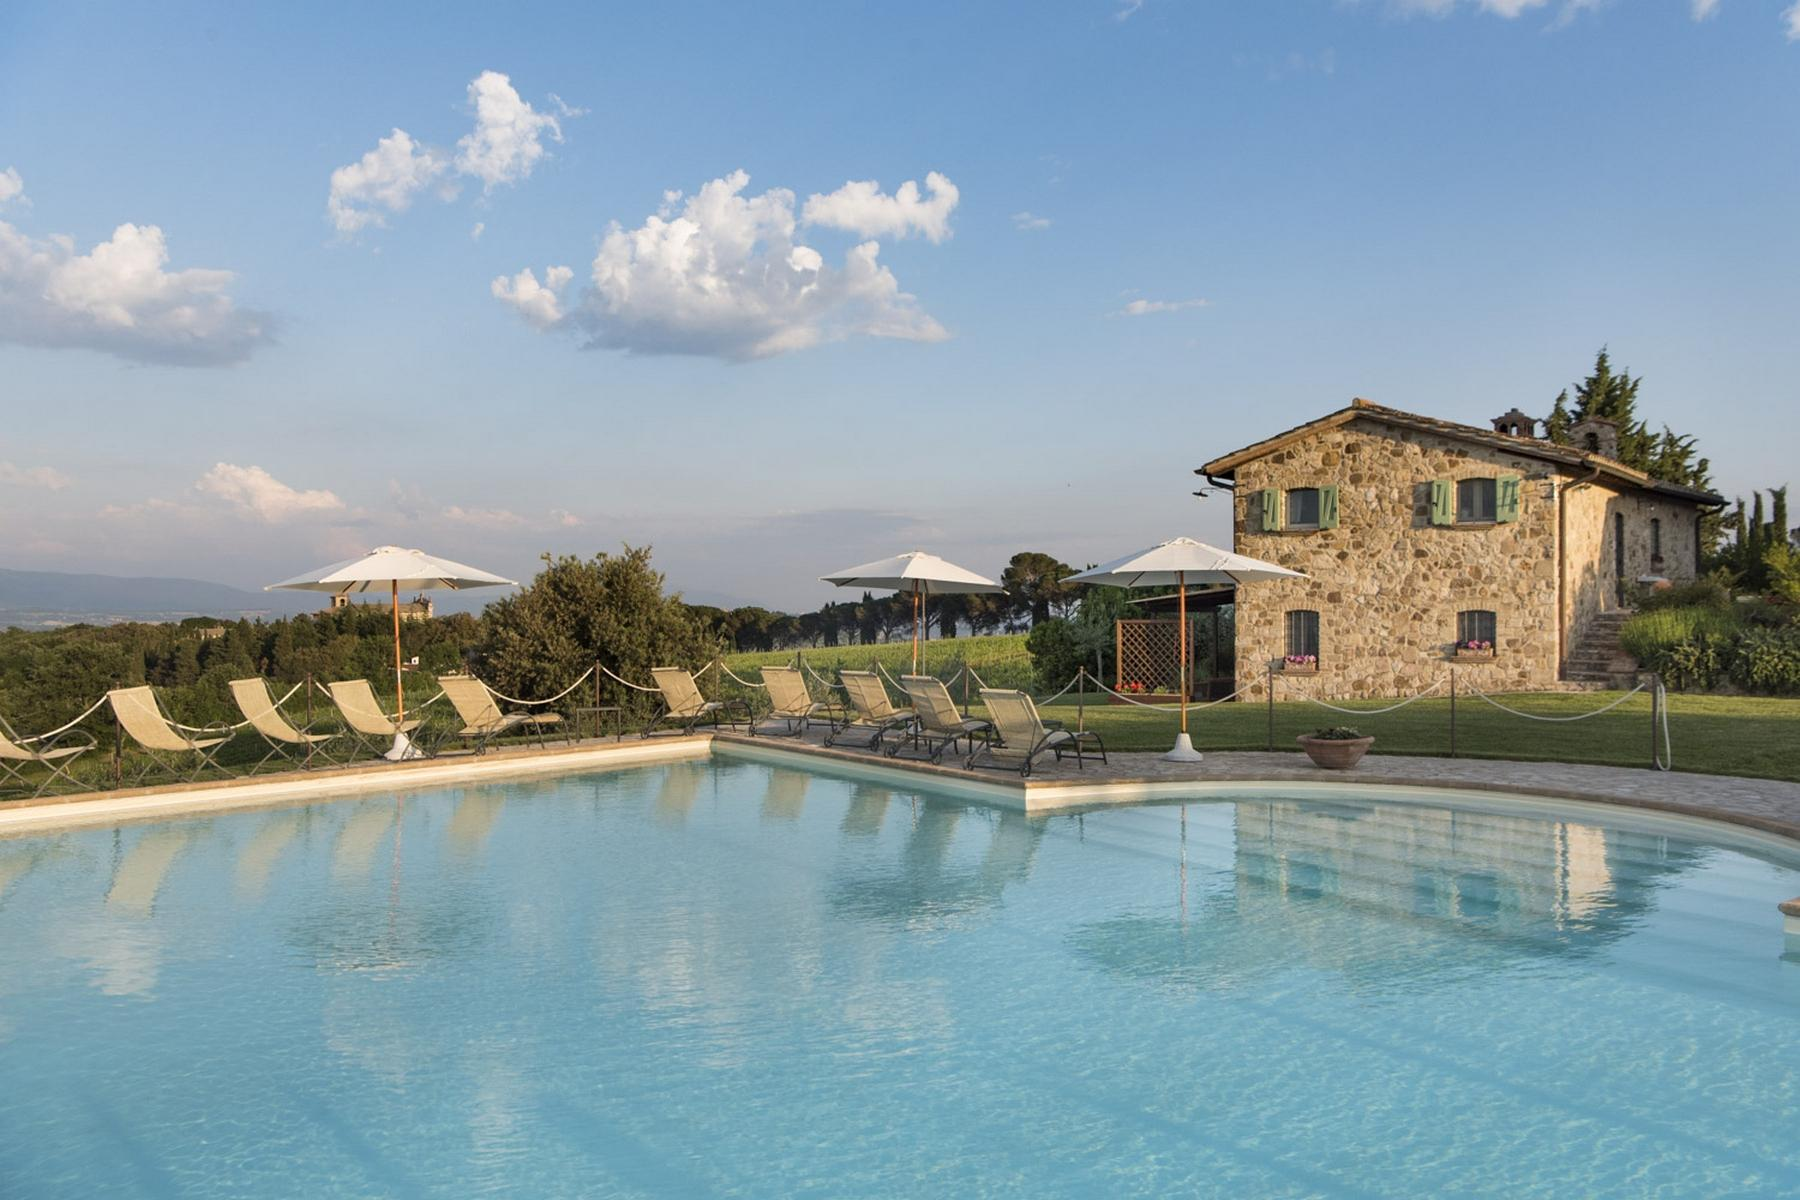 Marvellous property in the heart of Umbria Region - 1